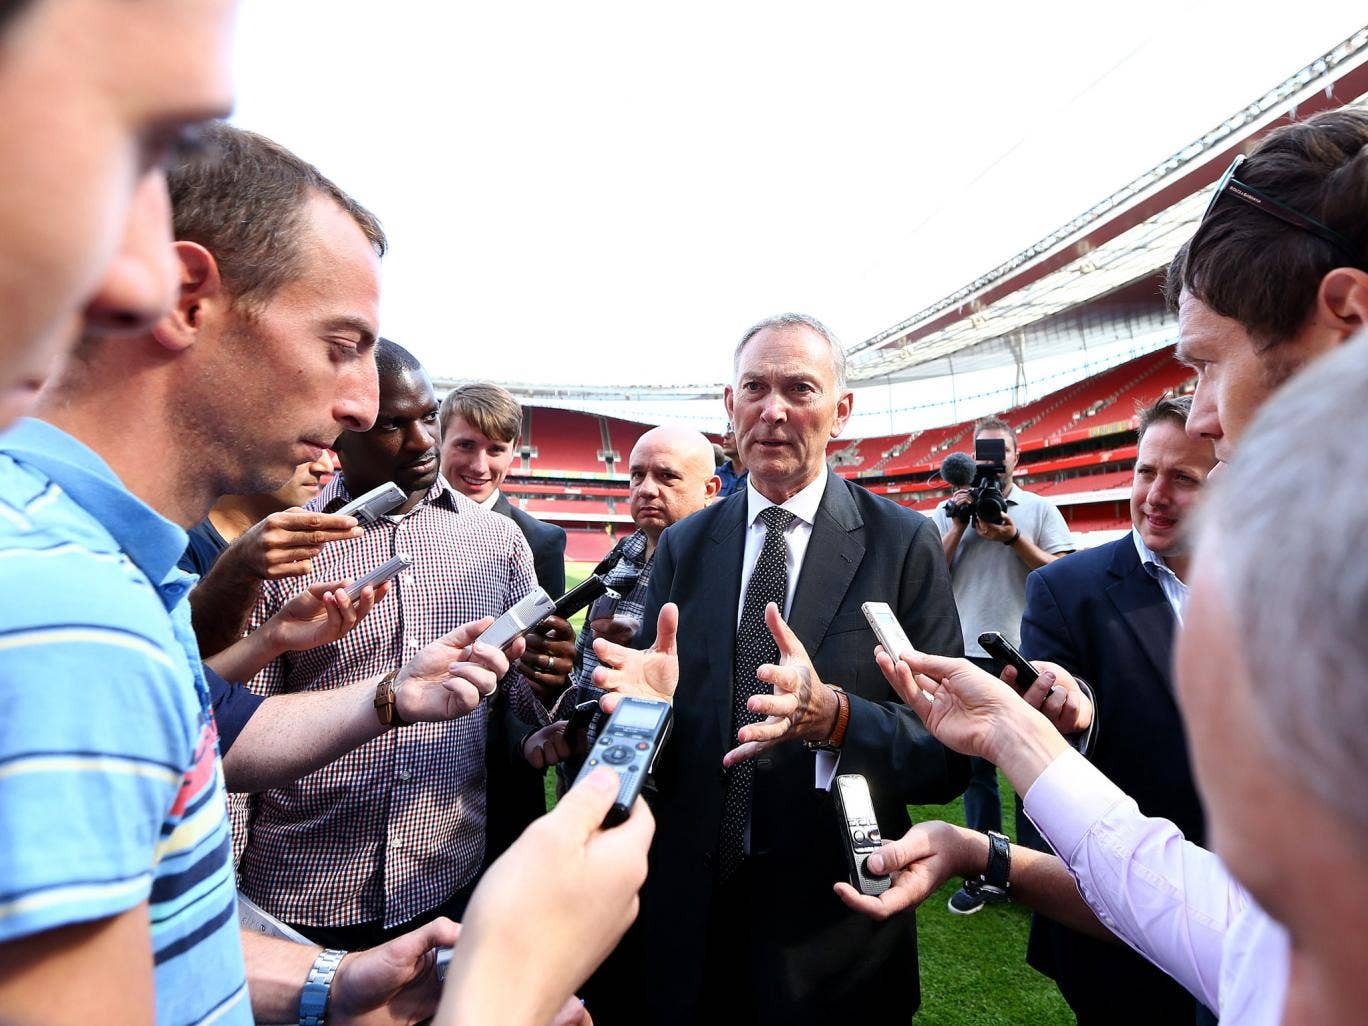 Premier League chief executive Richard Scudamore, who is under pressure to resign over emails leaked by his former PA